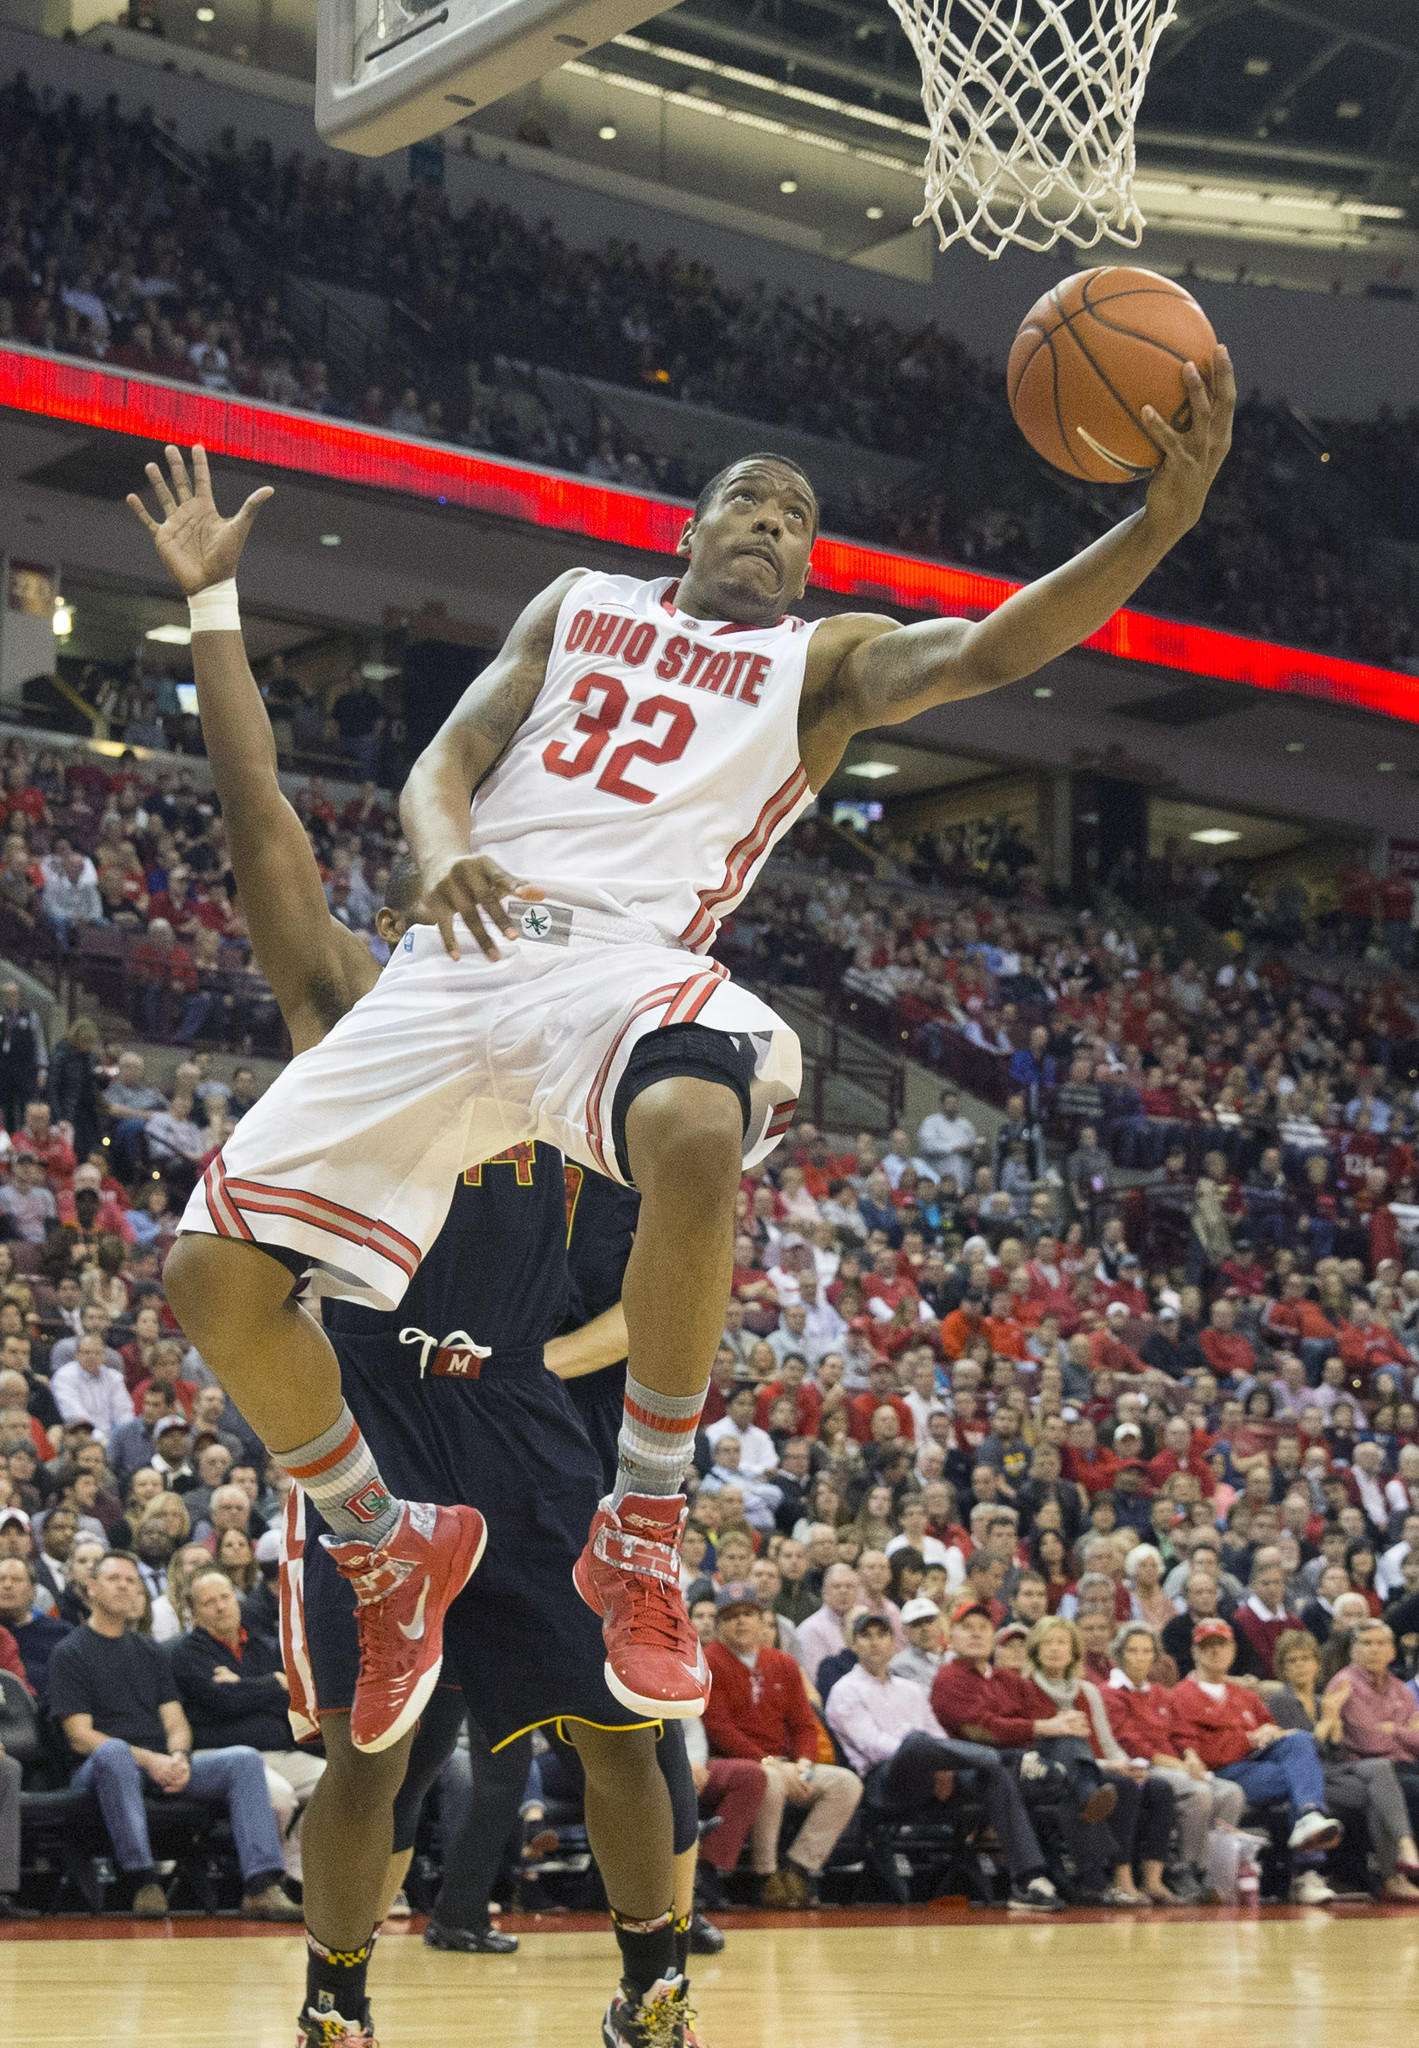 Ohio State's Lenzelle Smith Jr. scores against Maryland at the Schottenstein Center.